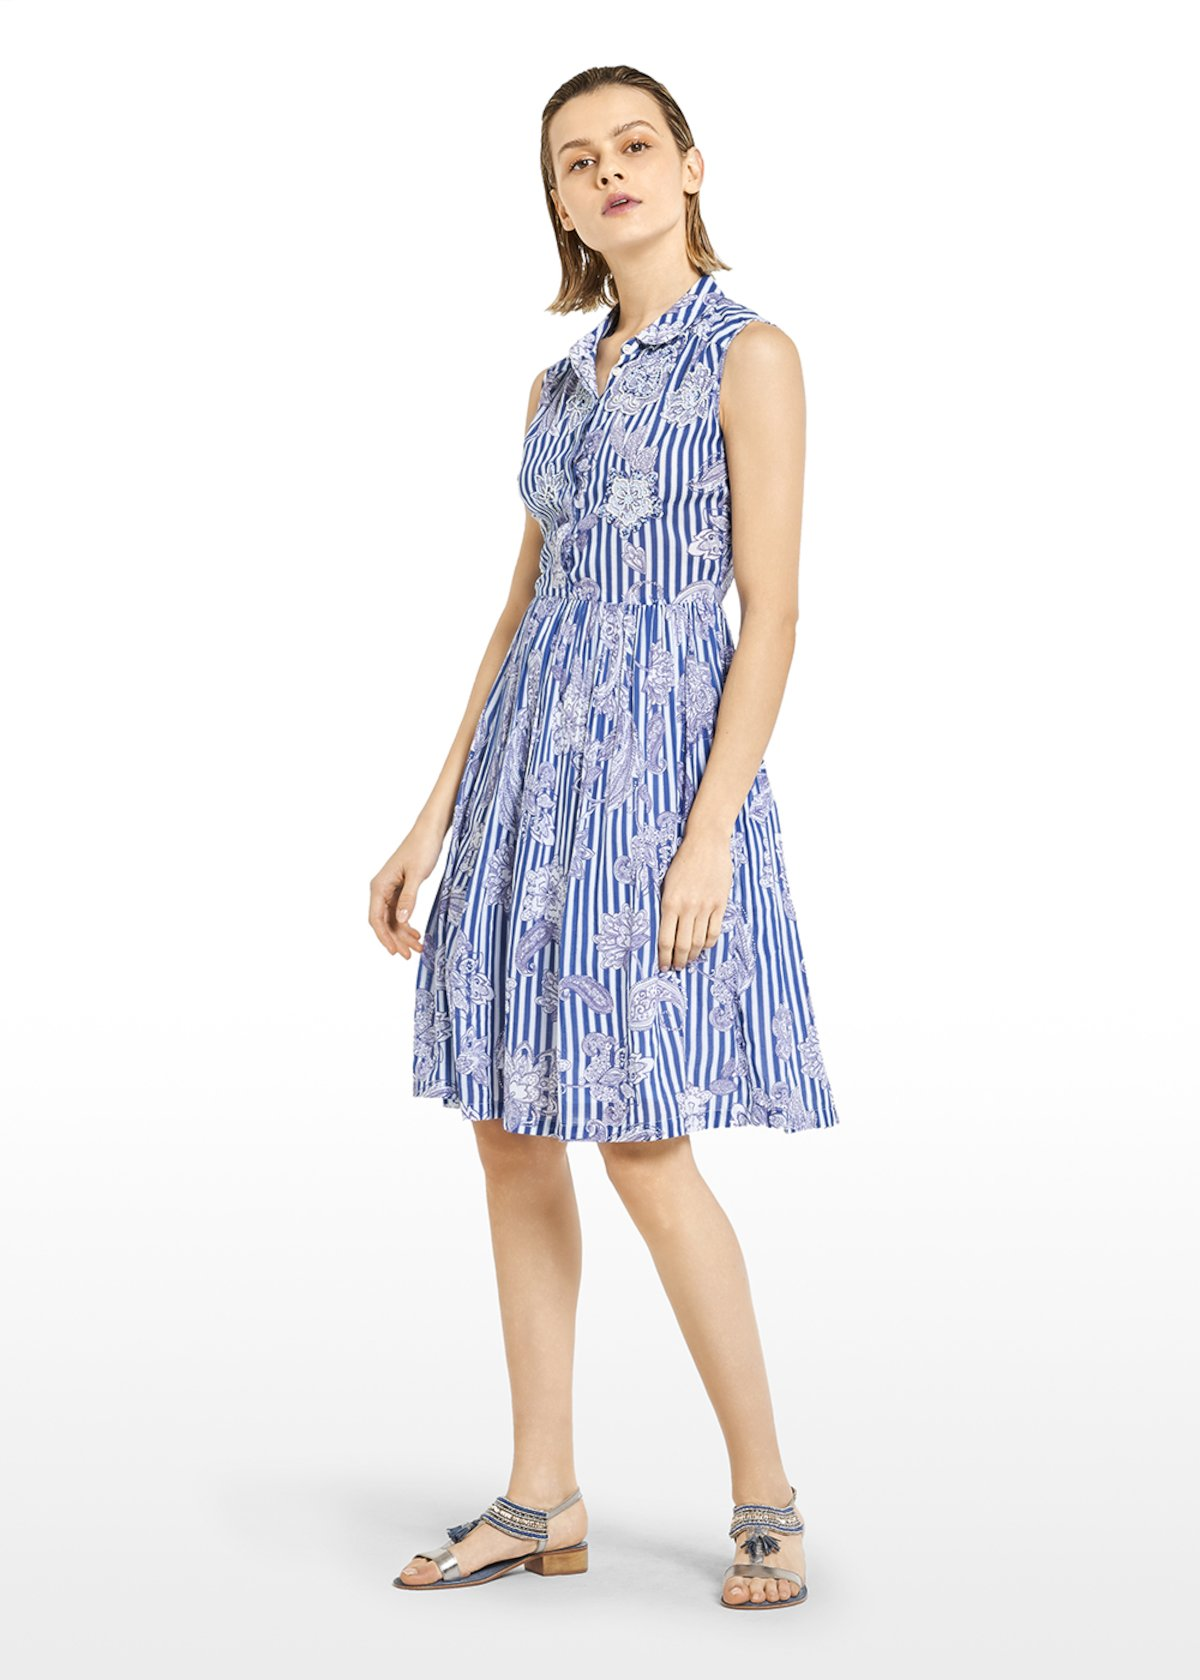 Alain dress in cotton with stripes and paisley - Avion / White Fantasia - Woman